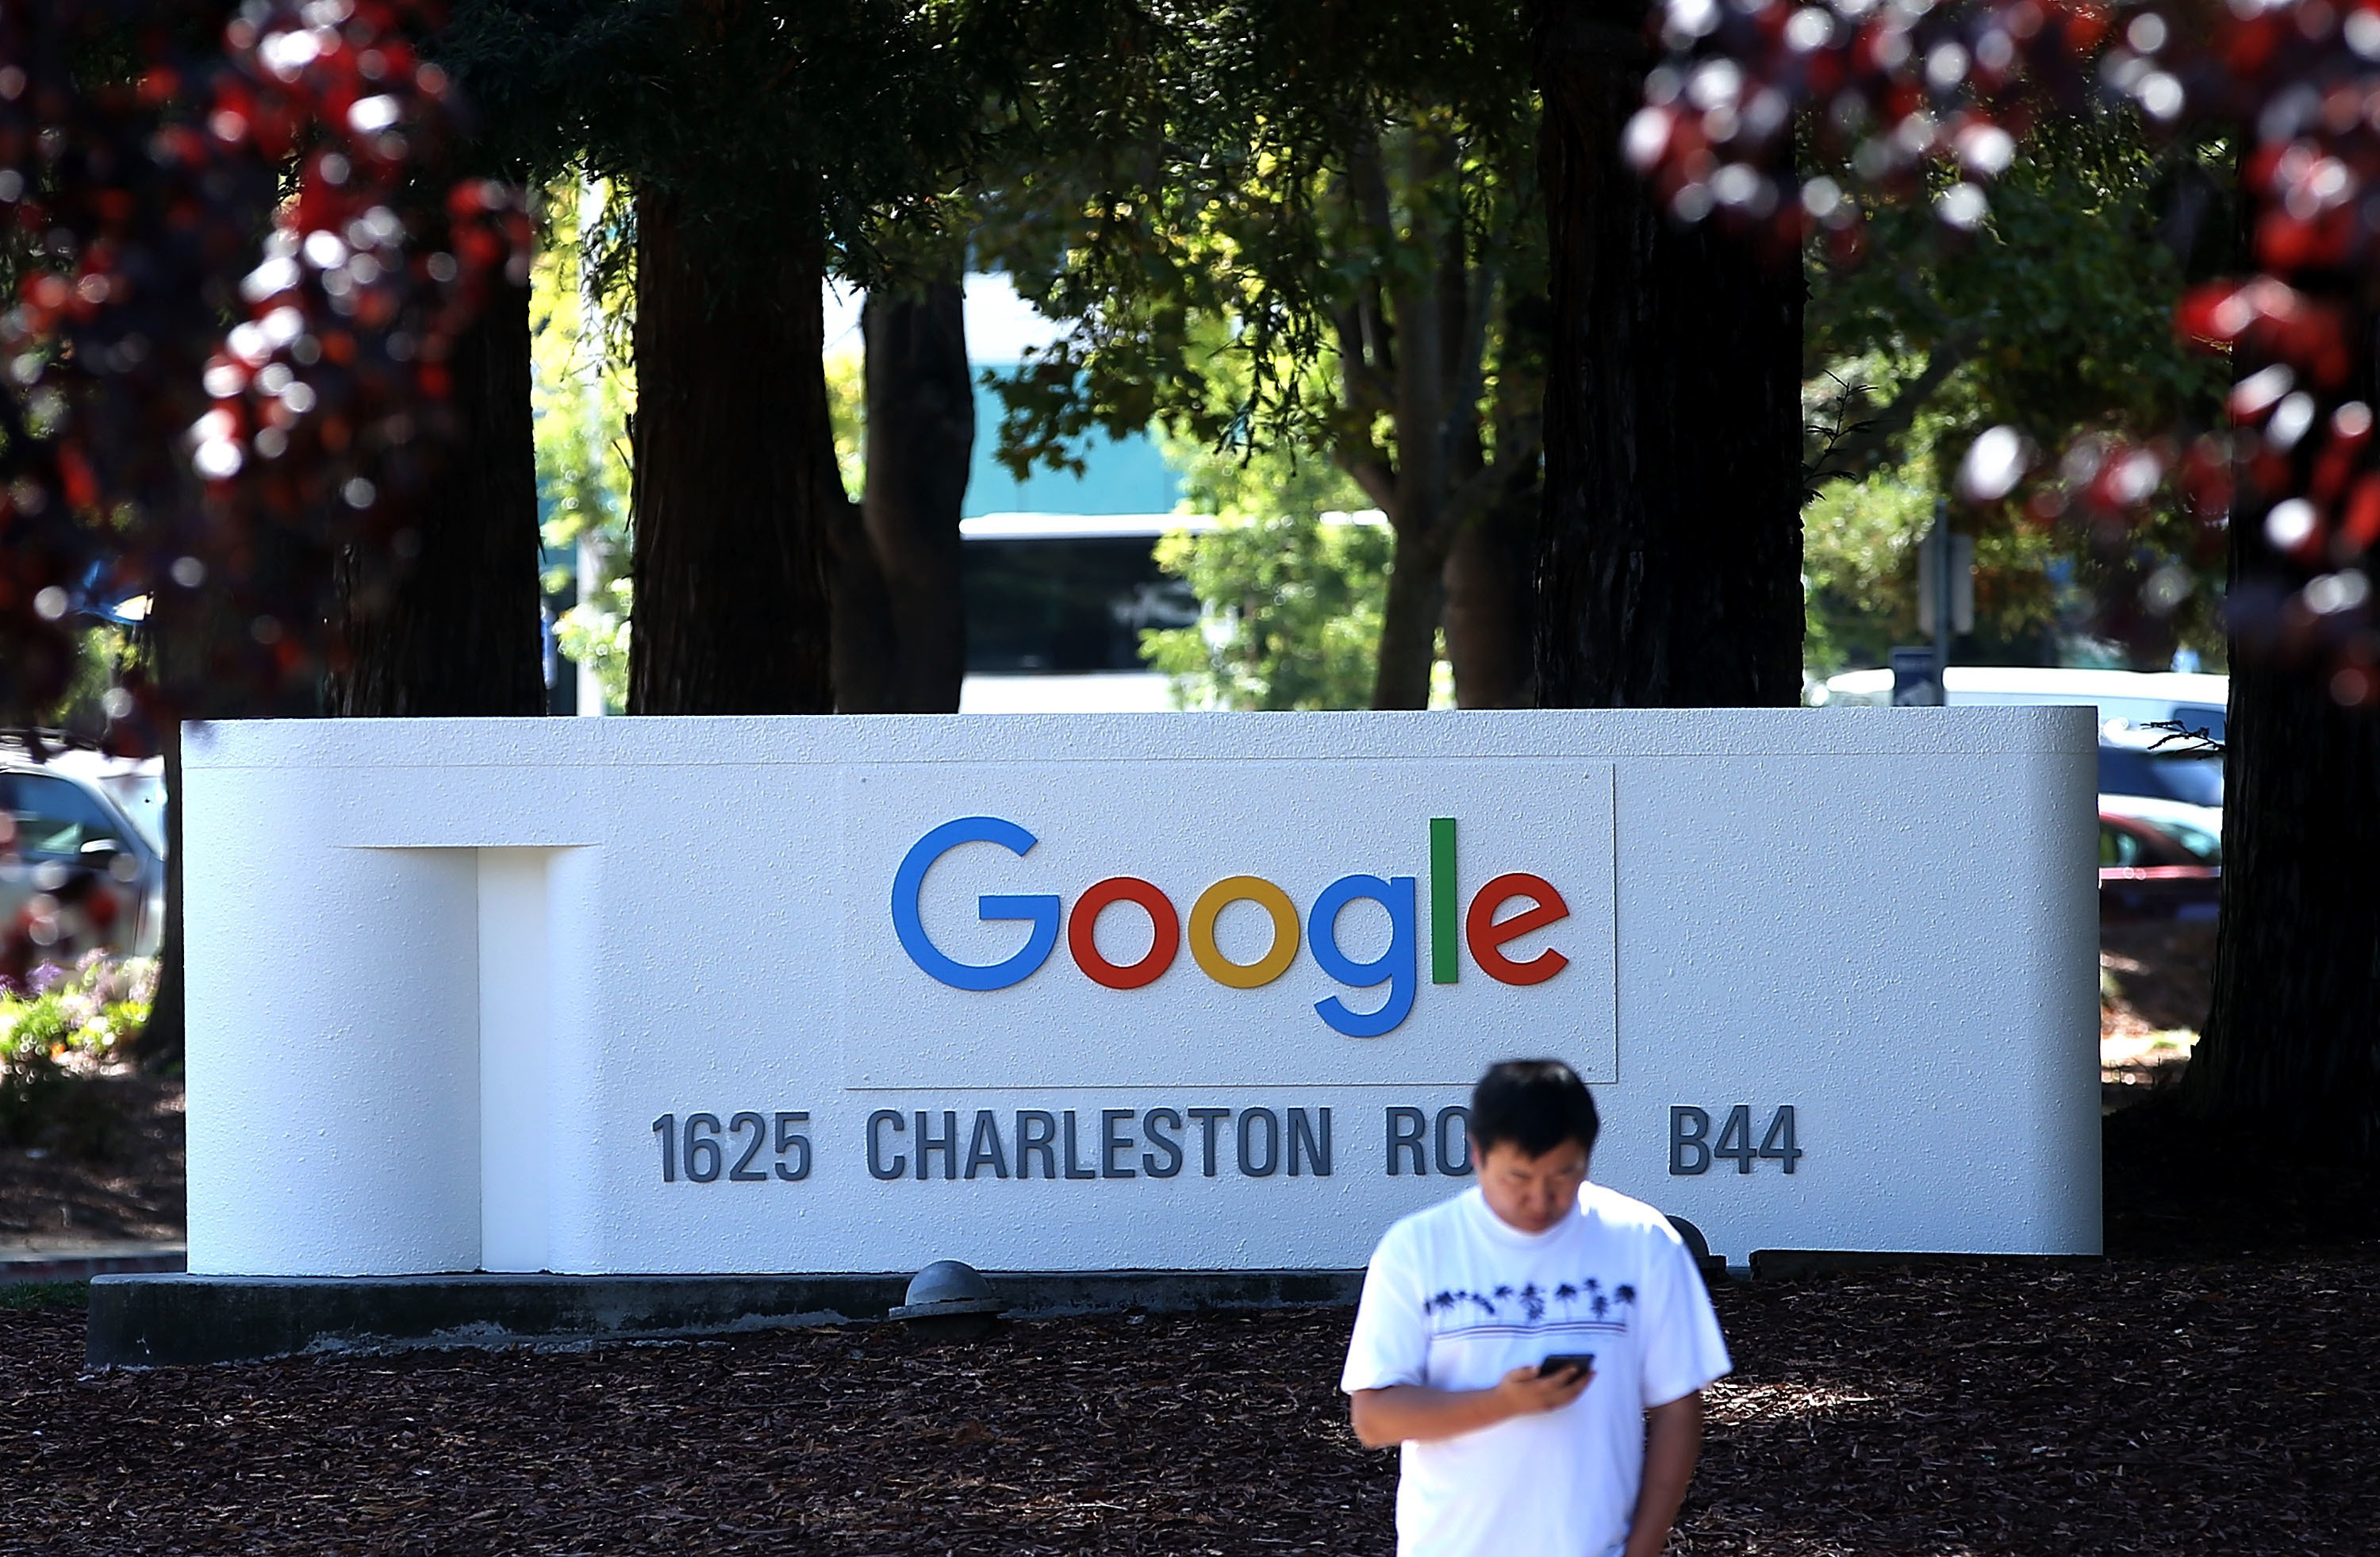 The new Google logo is displayed on a sign outside of the Google headquarters on September 2, 2015 in Mountain View, California.